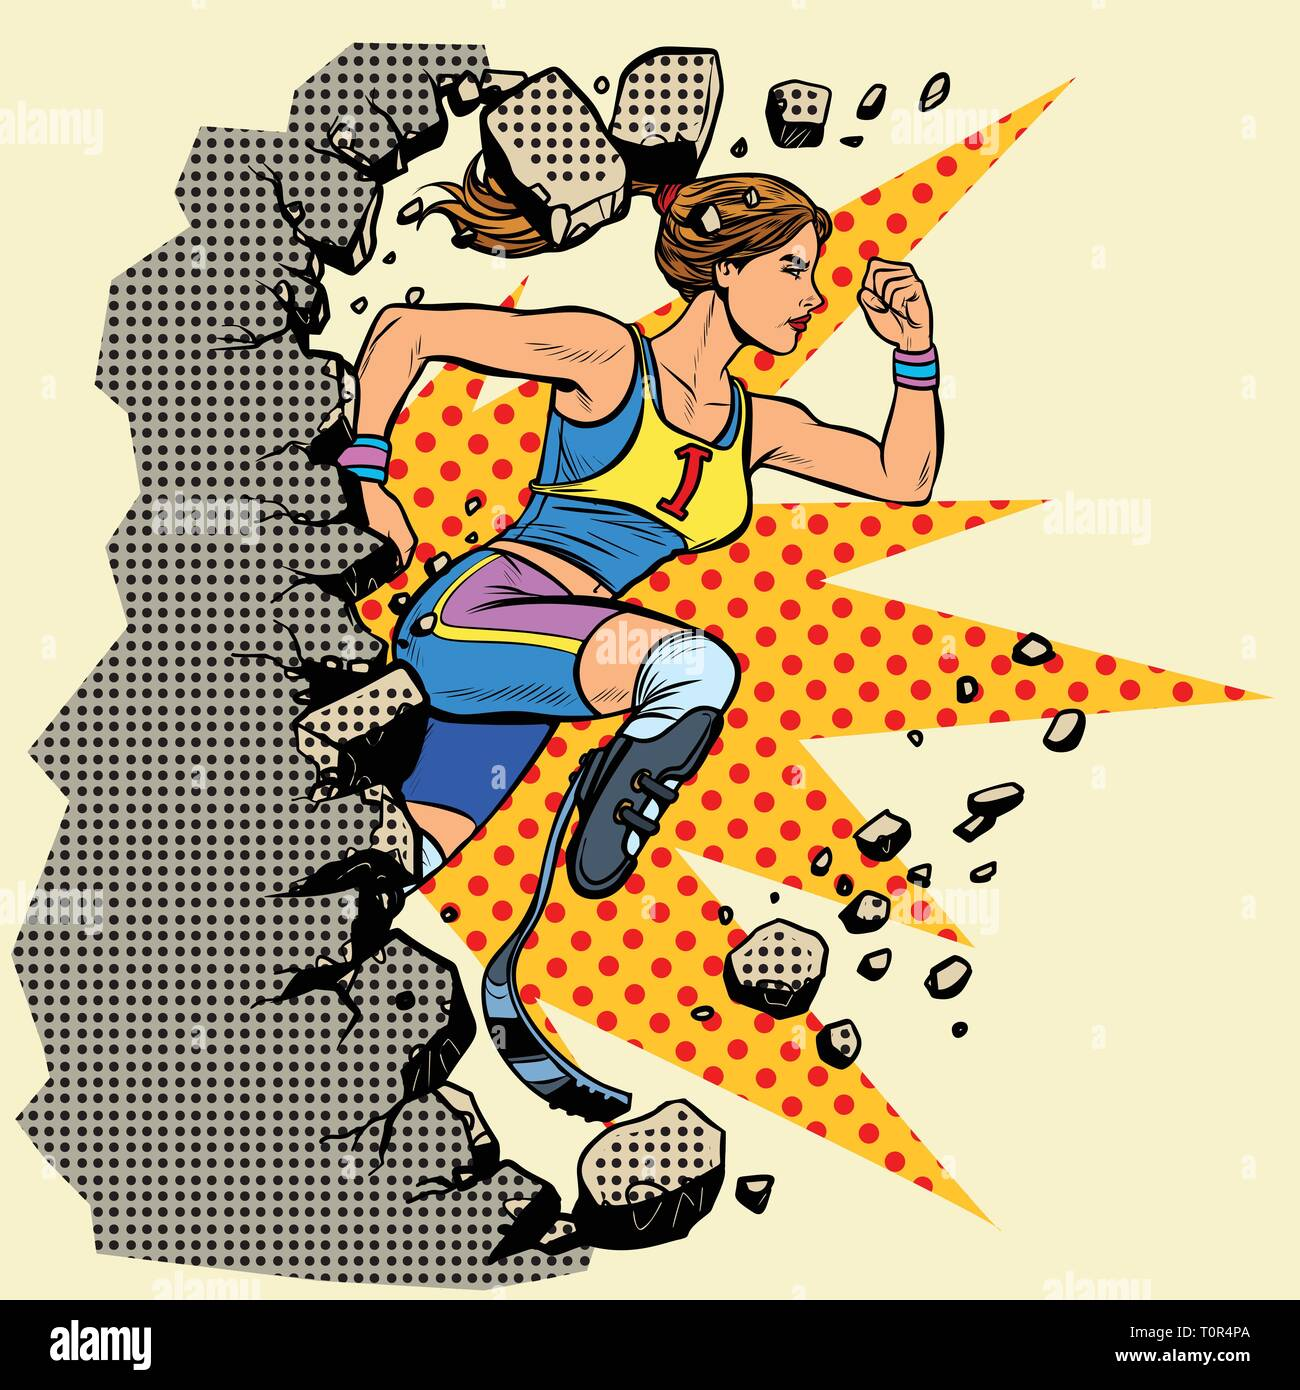 breaks the wall disabled woman runner with leg prostheses running forward. sports competition. Pop art retro vector illustration vintage kitsch - Stock Vector